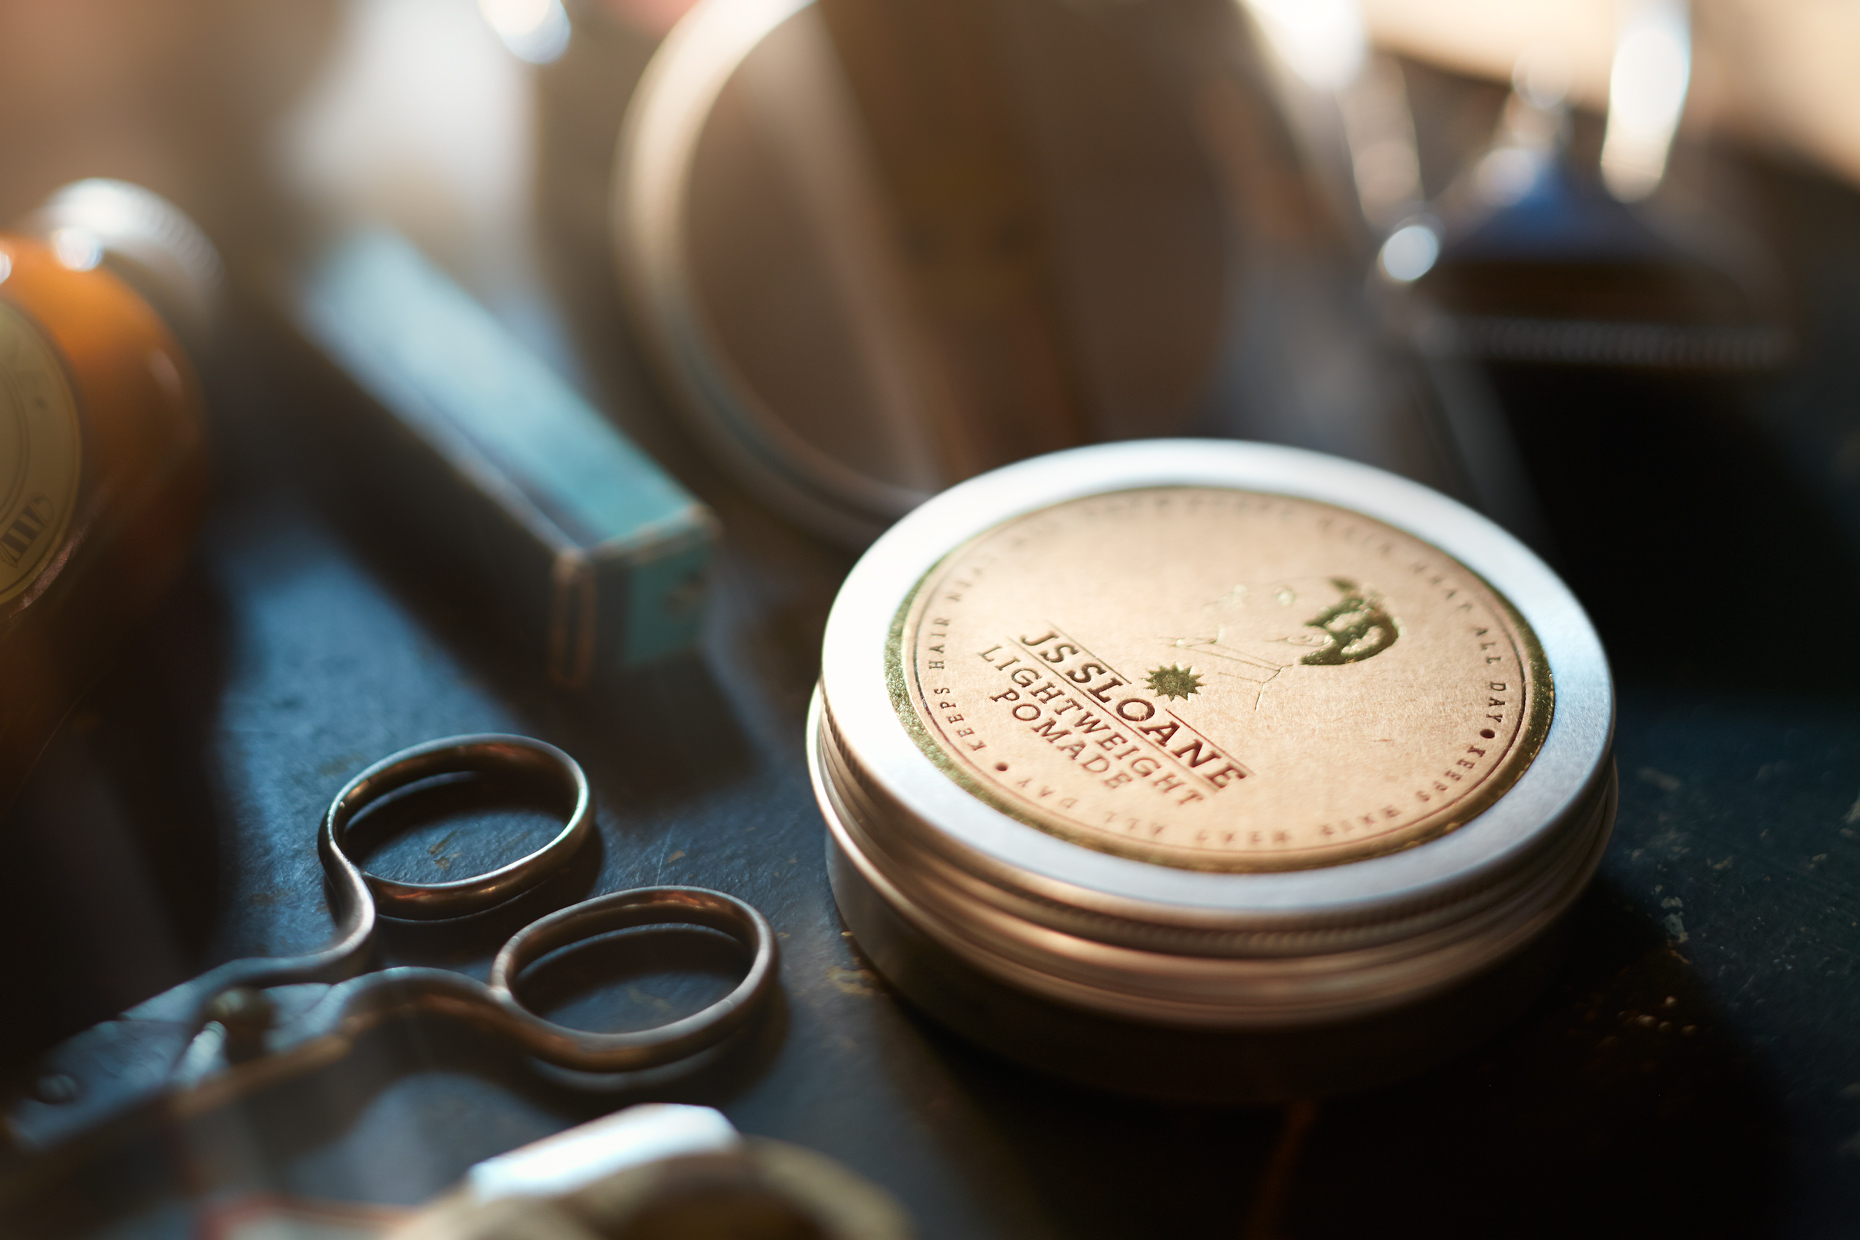 Product Photography StillLife Derek Israelsen Pomade Scissors